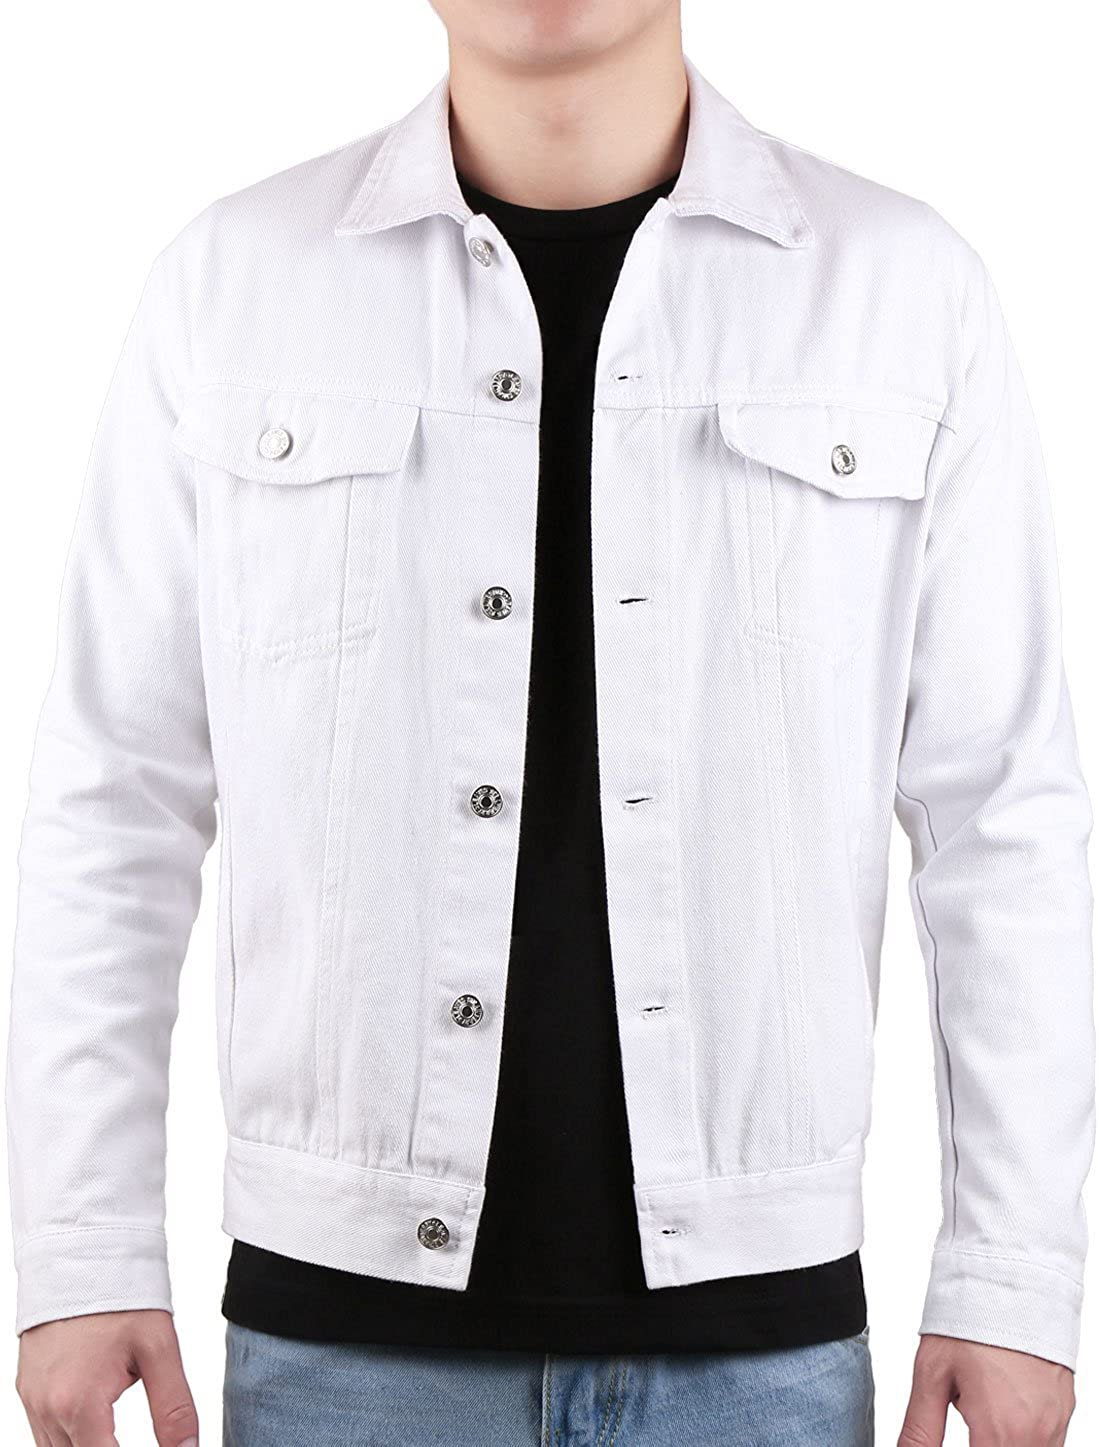 uxcell Men Classic Button Front Chest Pocket Long Sleeves Casual Jacket g17091300ux0015